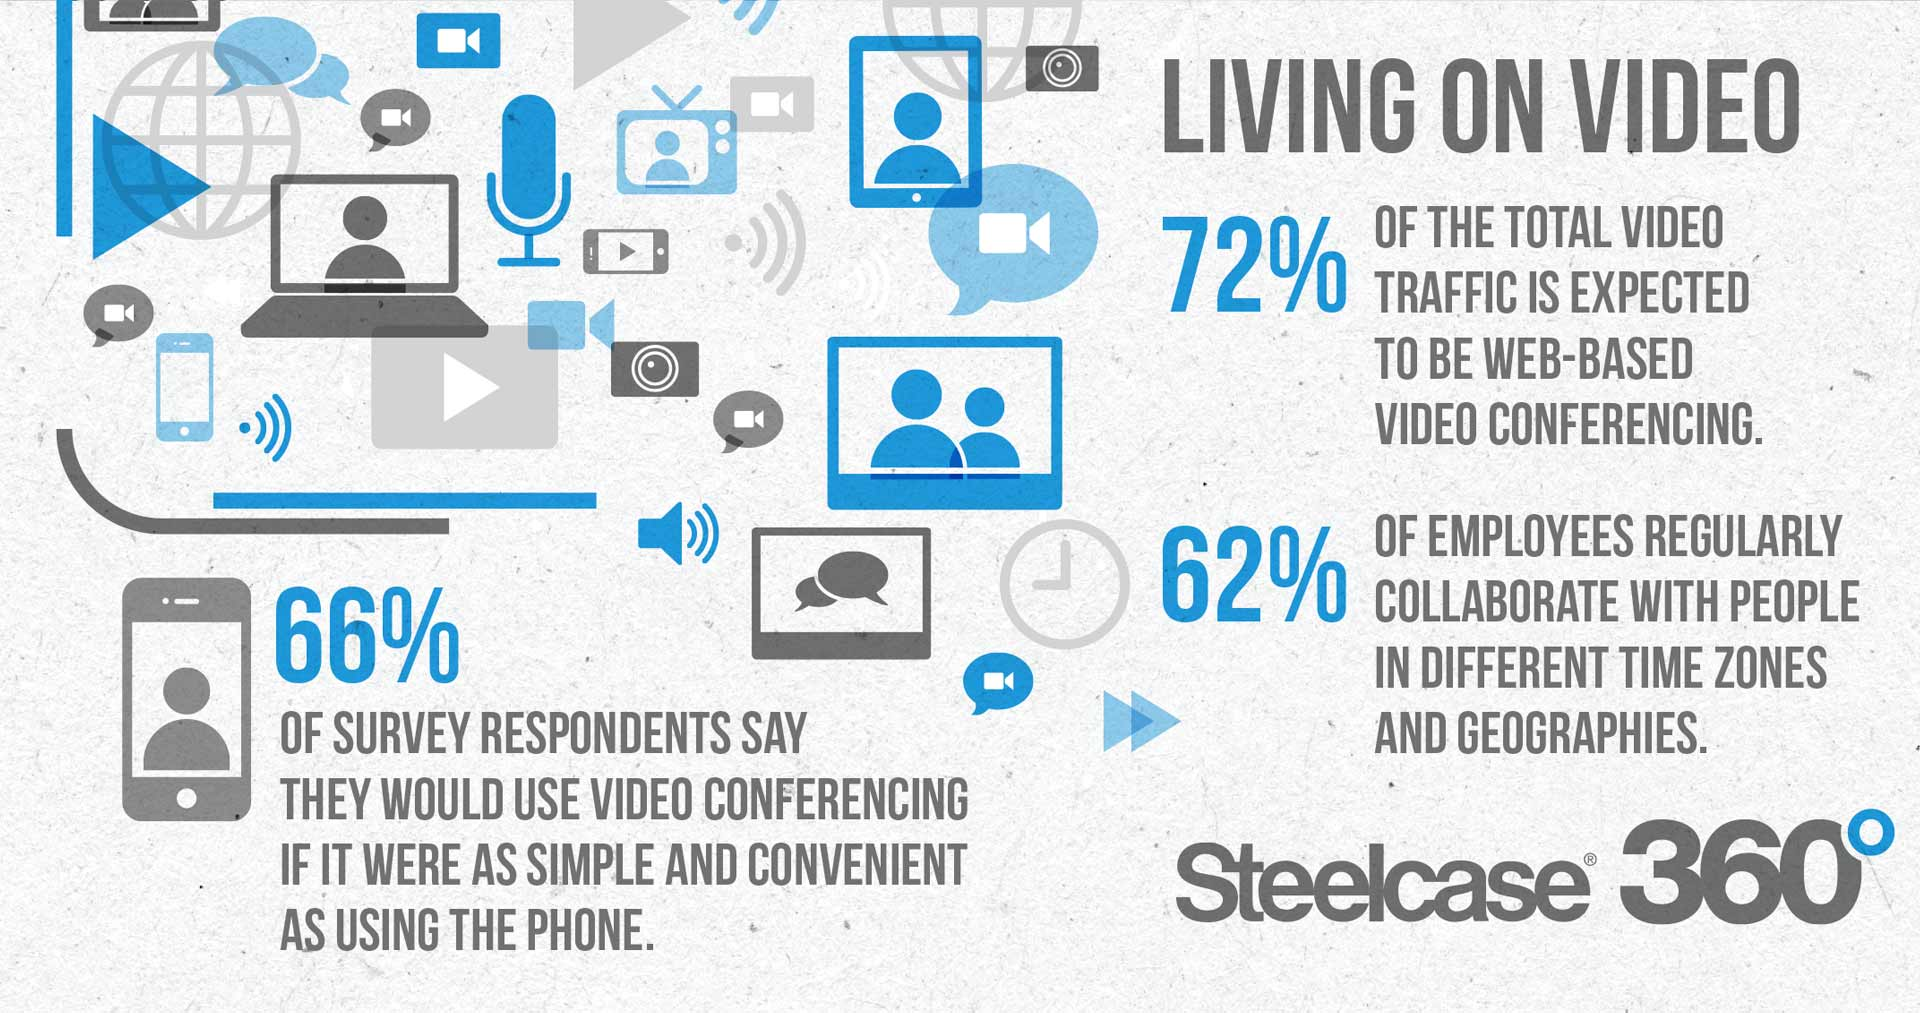 living-on-video-infographic-dl16